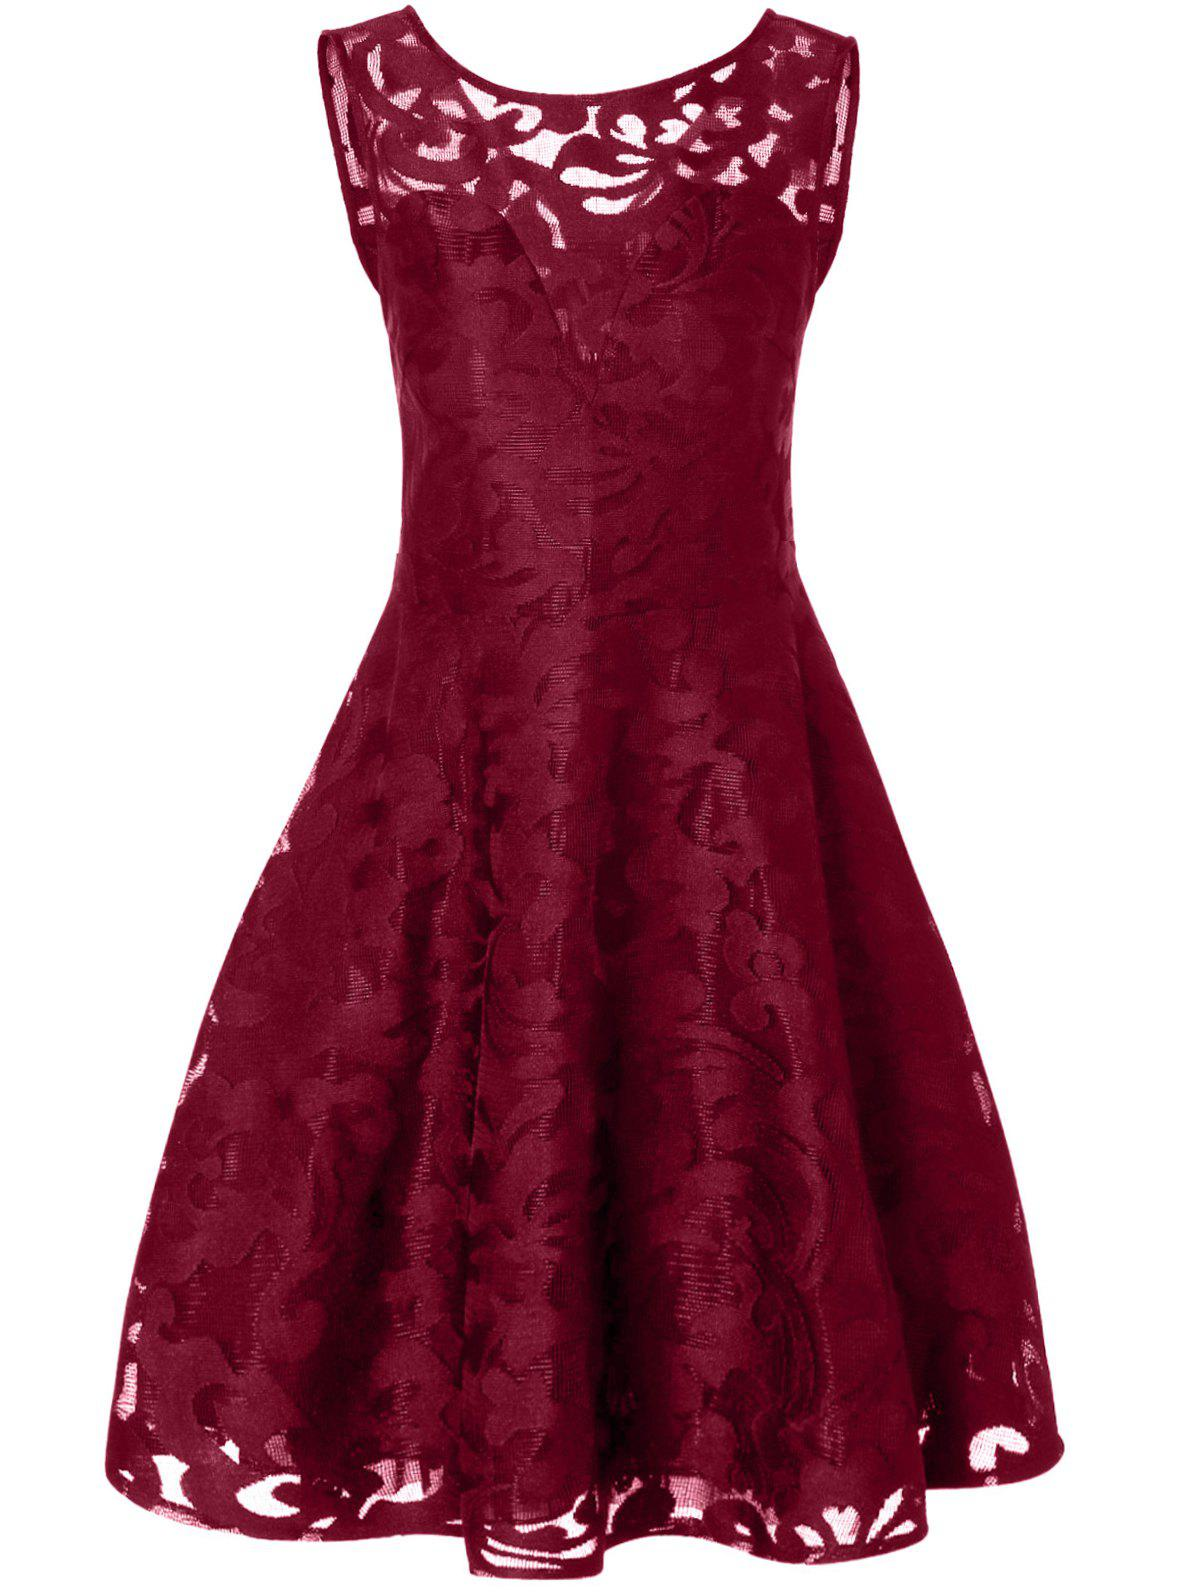 Lace Plus Size Holiday Short Cocktail DressWOMEN<br><br>Size: 4XL; Color: BURGUNDY; Style: Vintage; Material: Polyester; Silhouette: A-Line; Dresses Length: Mid-Calf; Neckline: Round Collar; Sleeve Length: Sleeveless; Pattern Type: Solid; With Belt: No; Season: Fall; Weight: 0.2570kg; Package Contents: 1 x Dress;